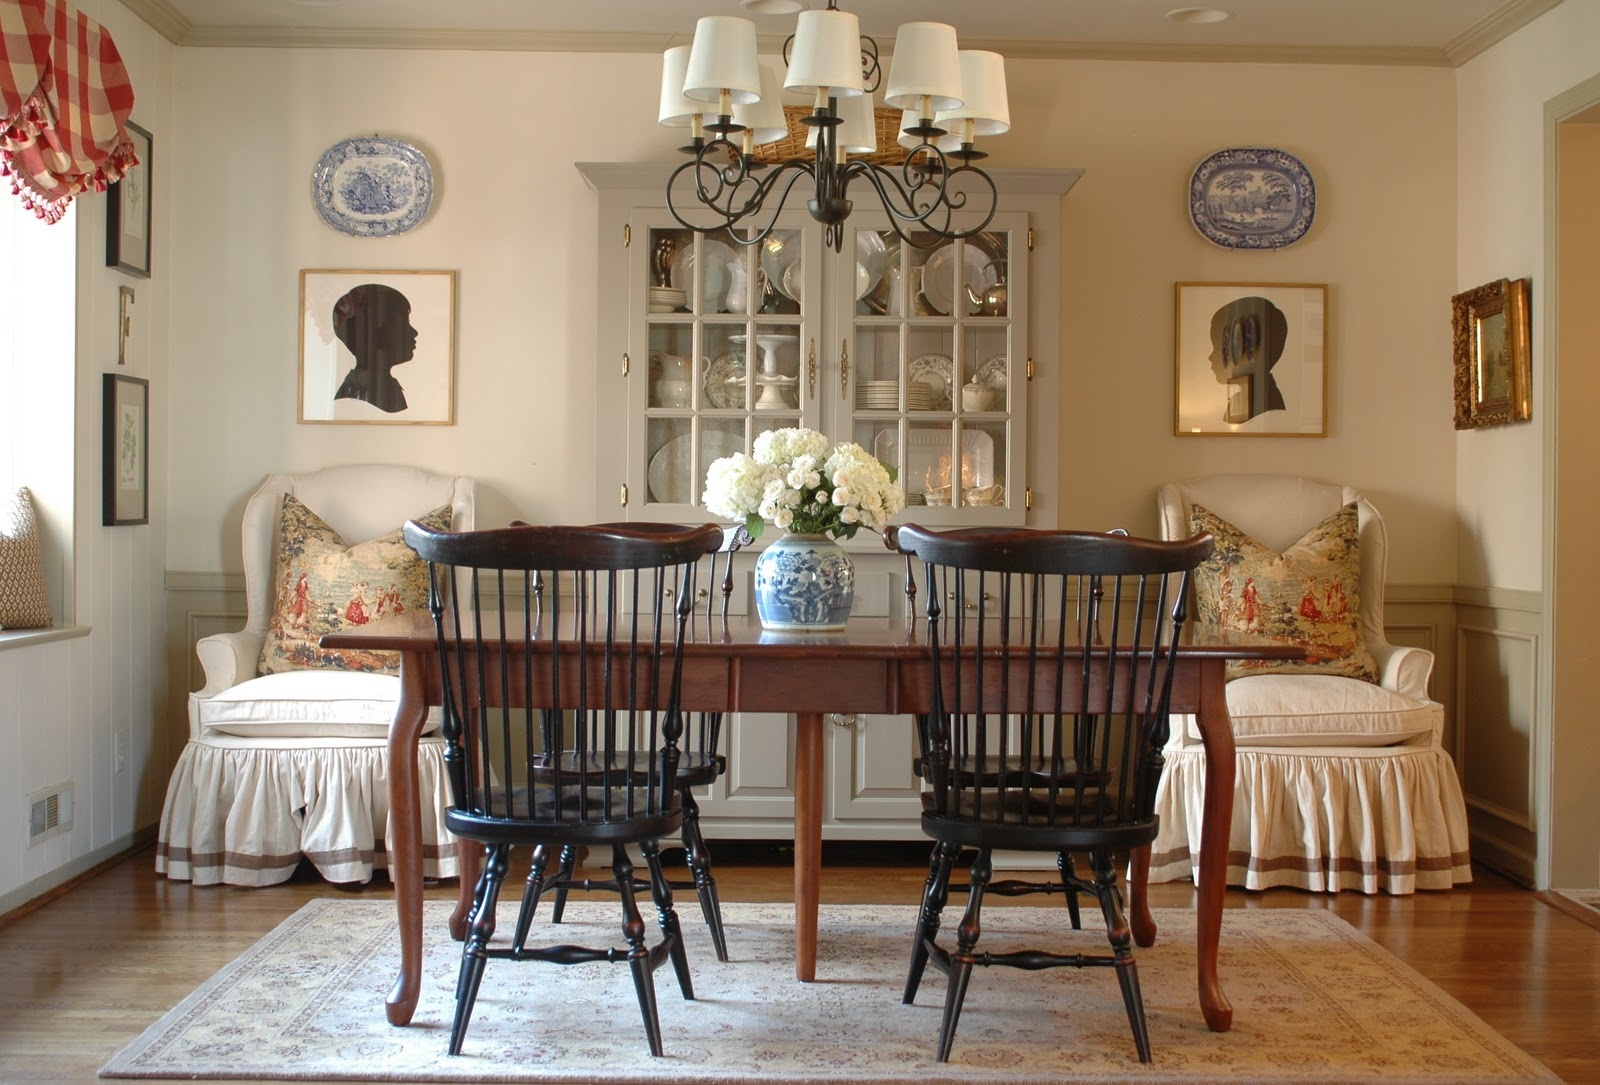 NINE + SIXTEEN: Before And After: Our Dining Room